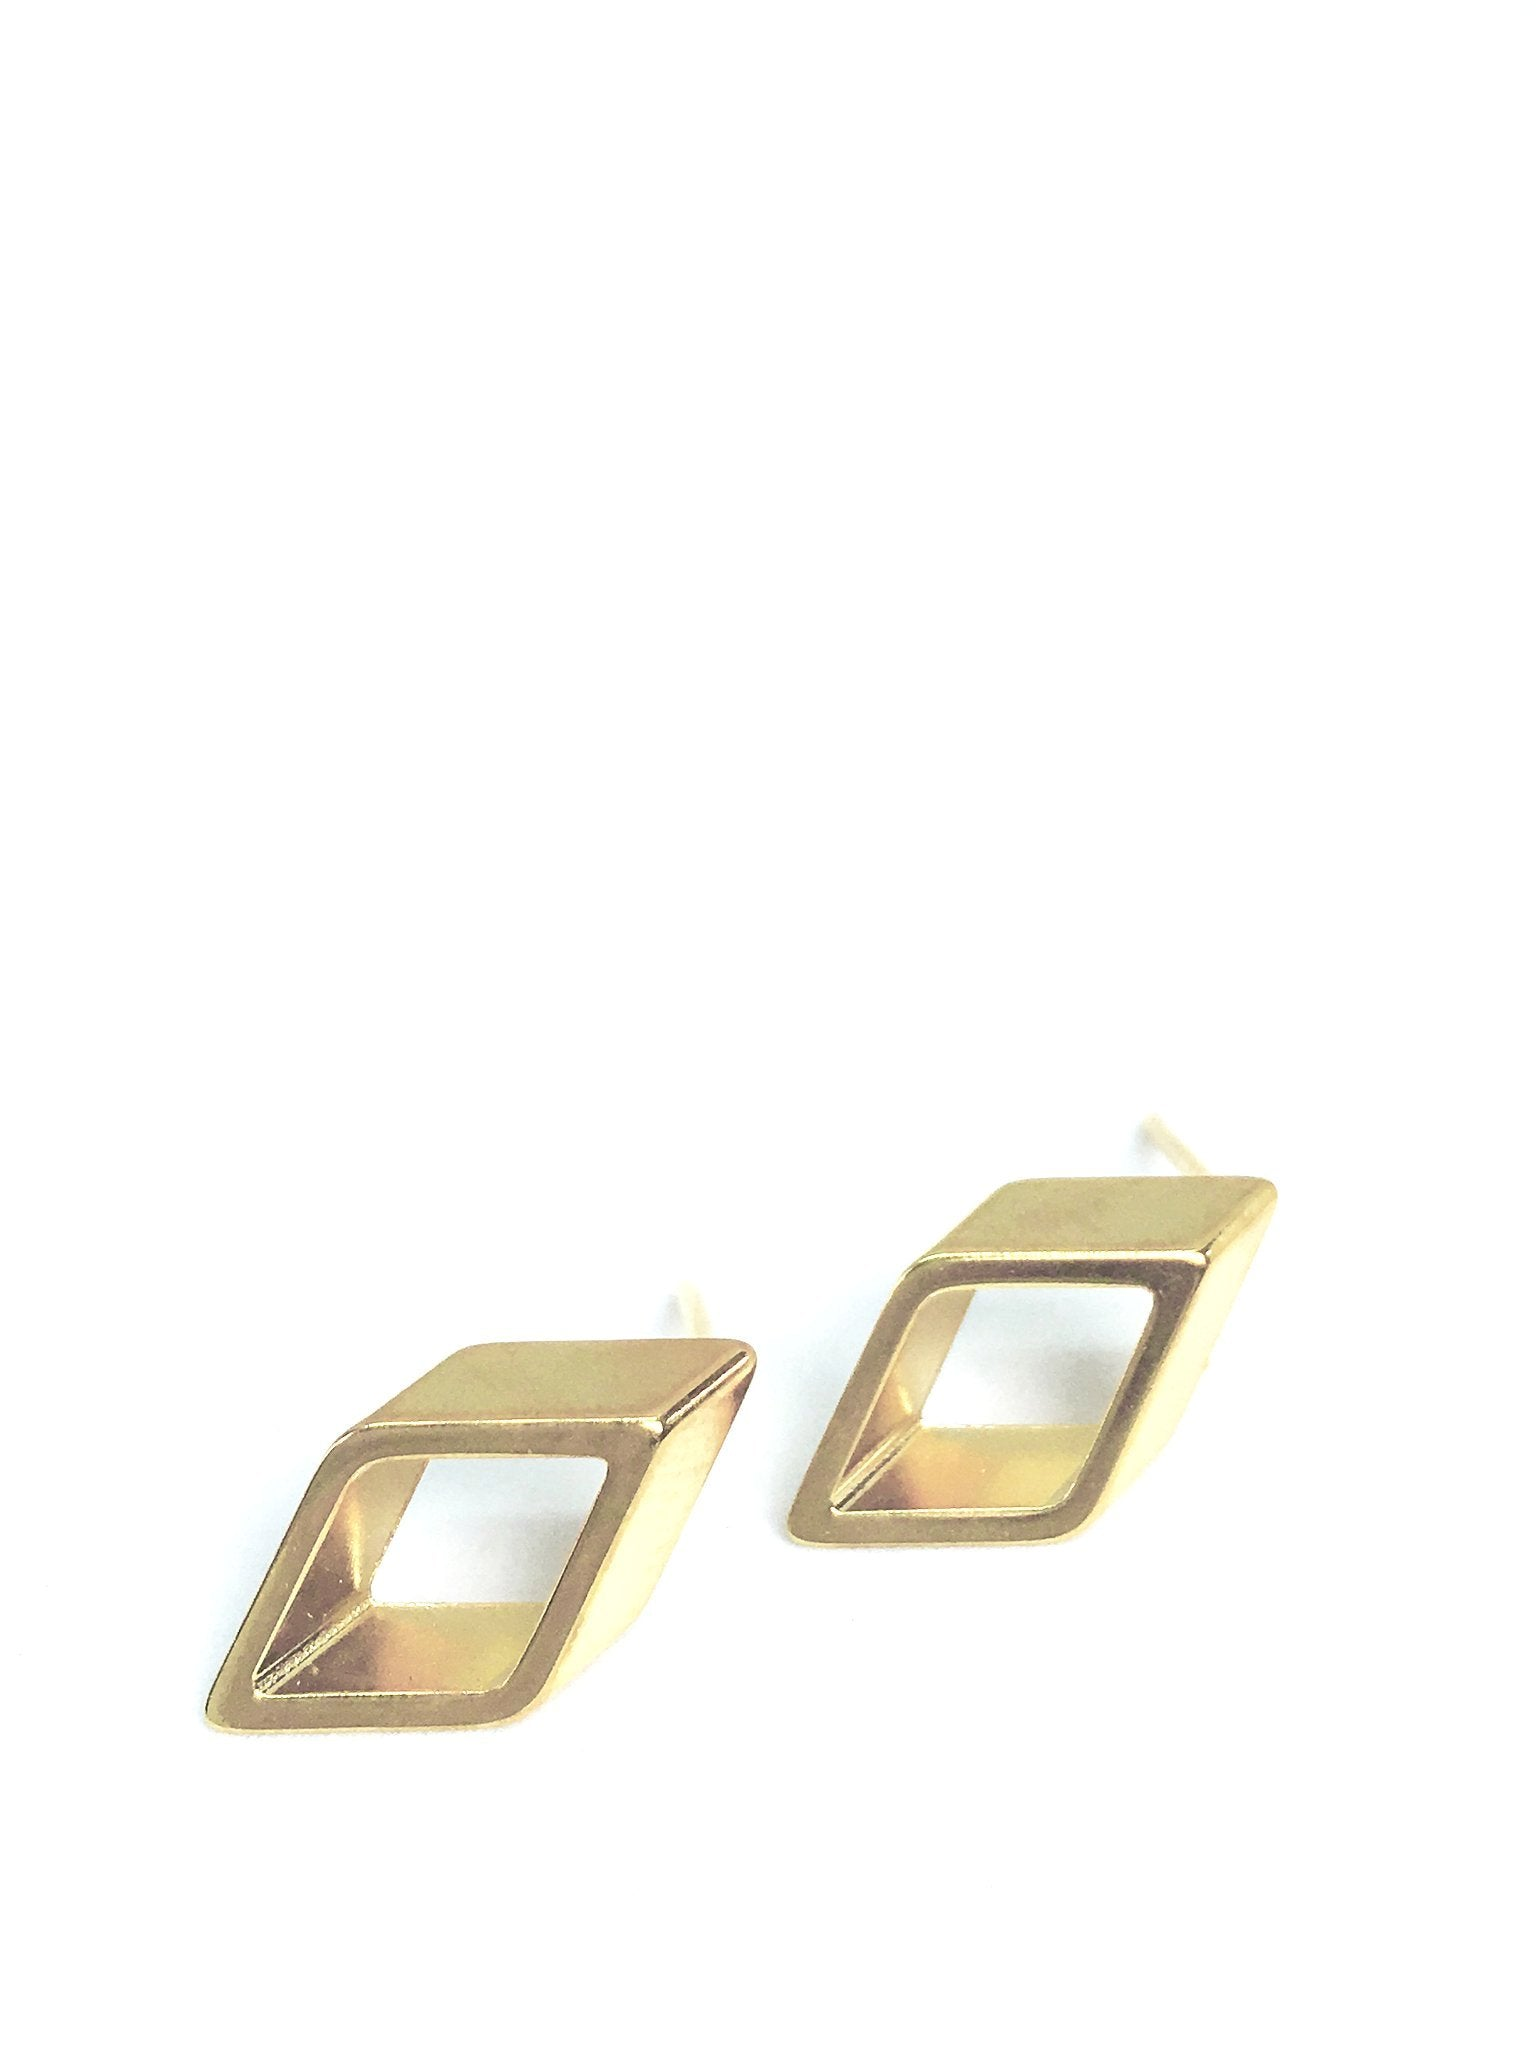 PURE GEOMETRY - Mini rhombus stud earrings